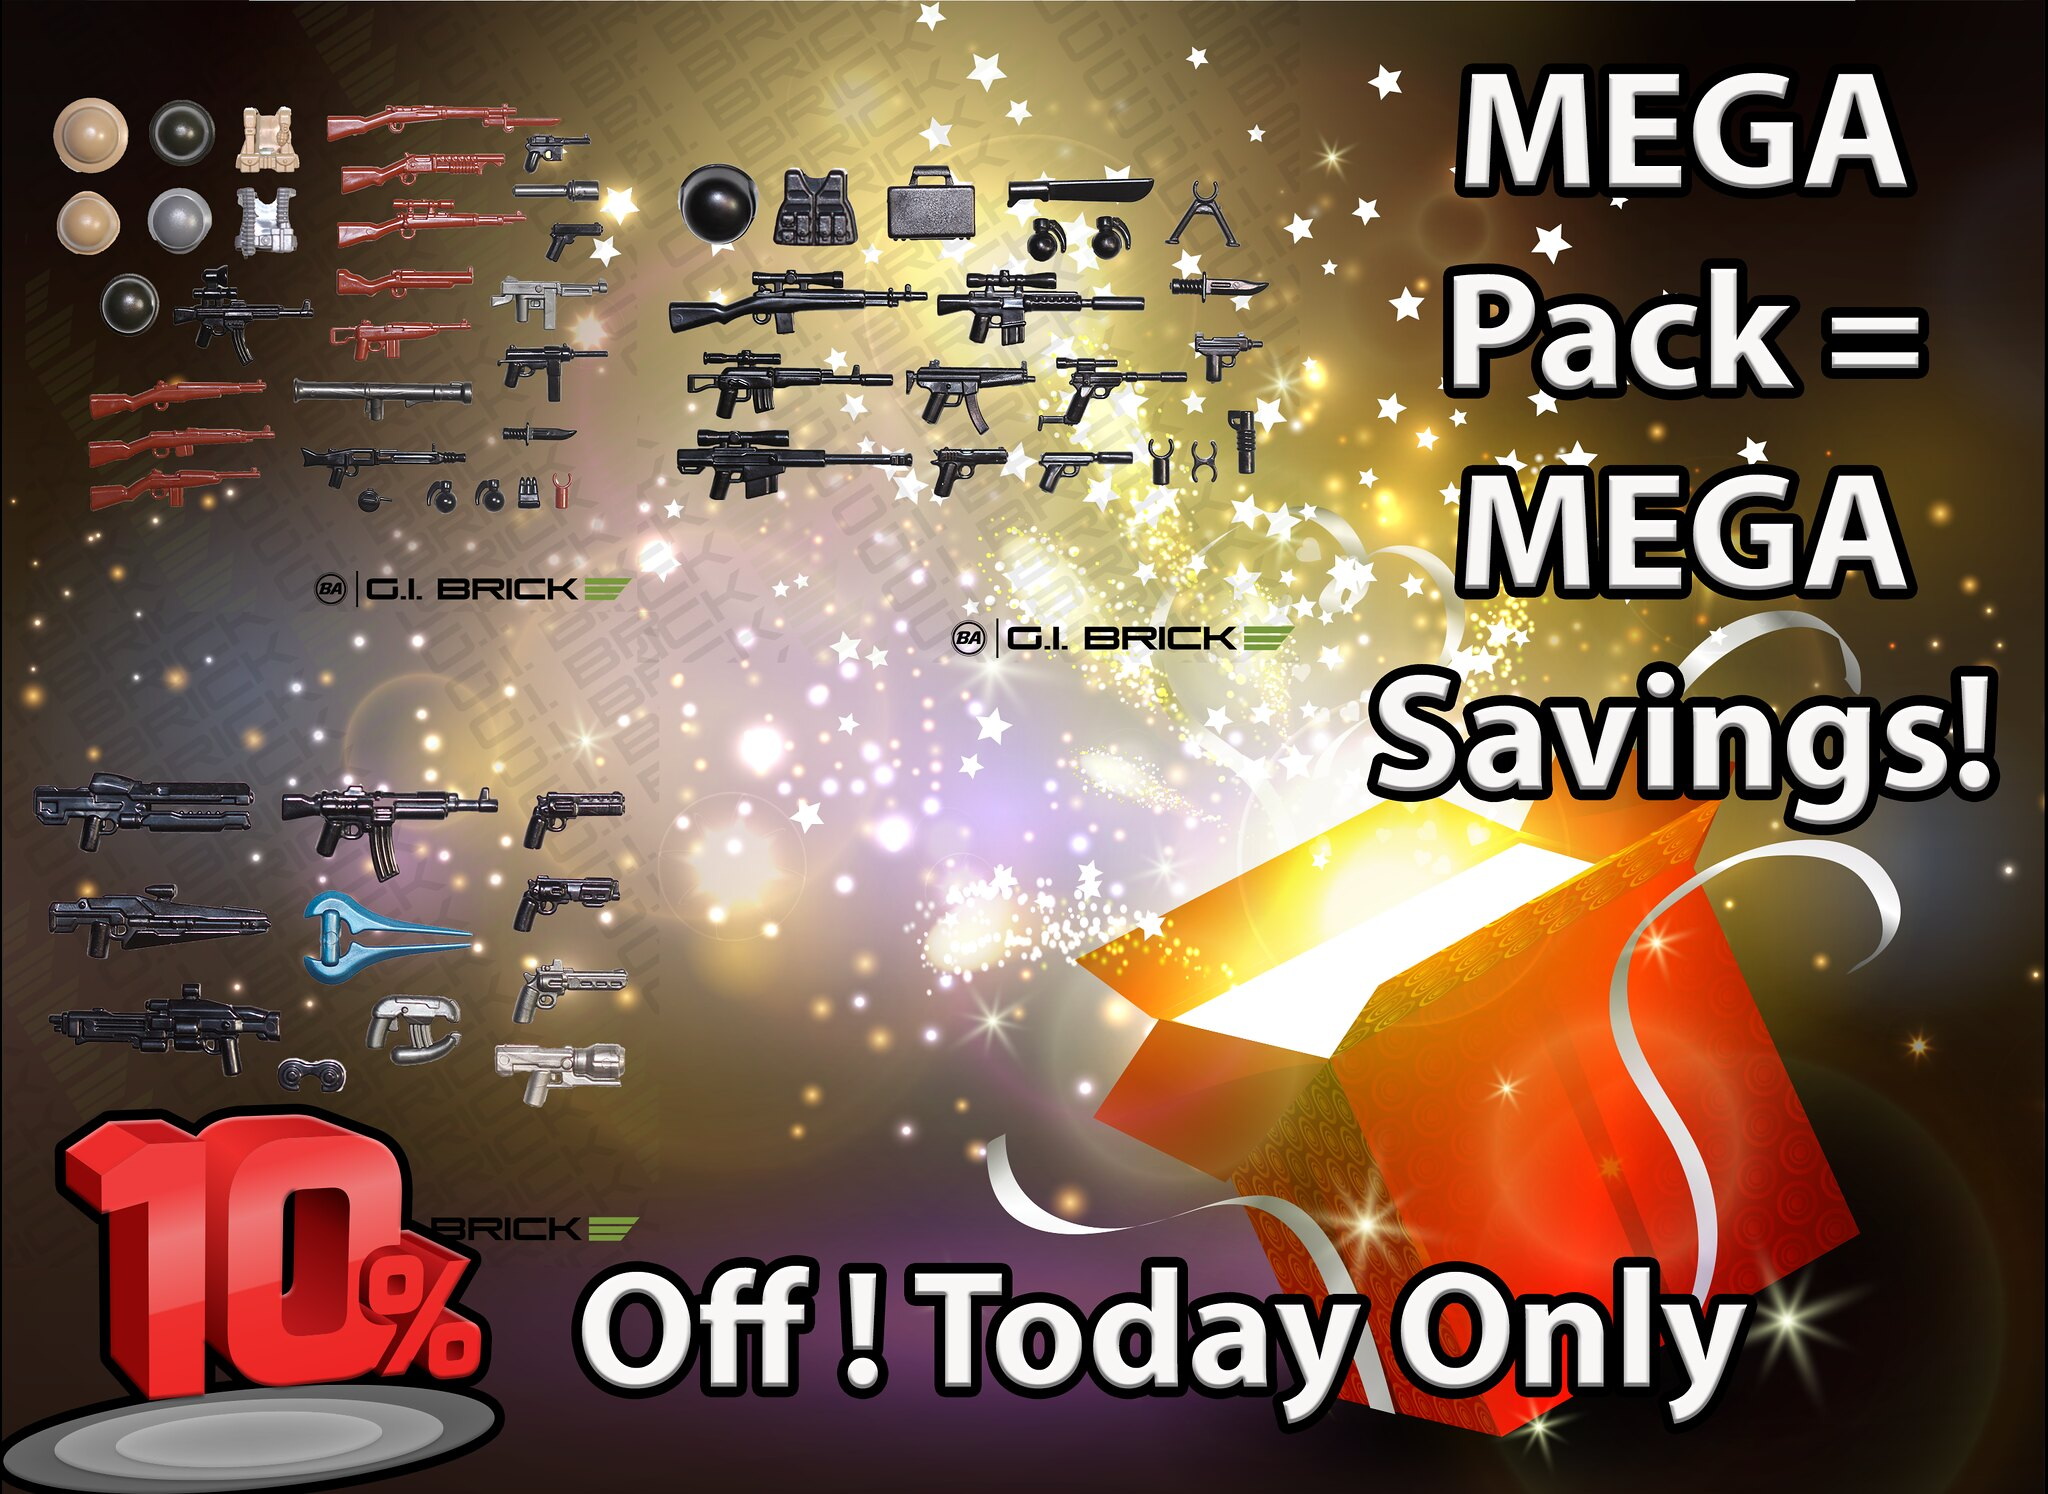 MEGA PACK SALE for Cyber Monday!!!